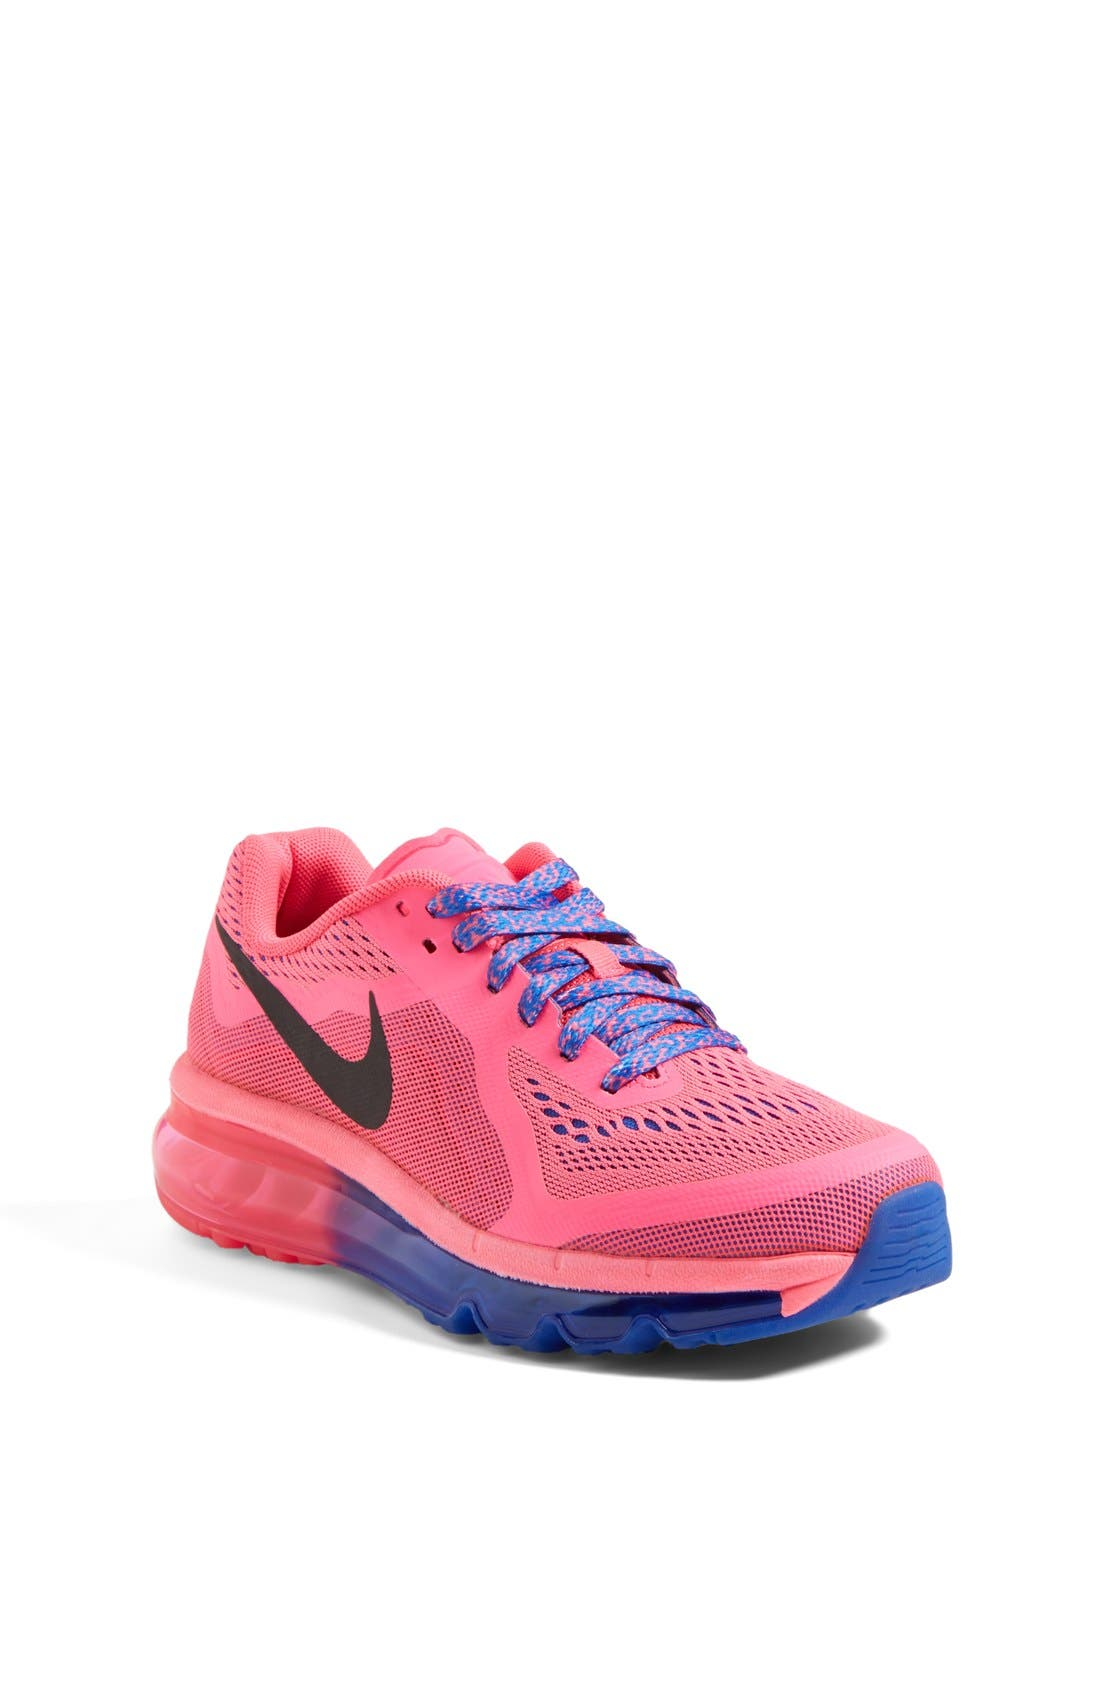 Alternate Image 1 Selected - Nike 'Air Max 2014' Running Shoe (Big Kid) (Online Only)